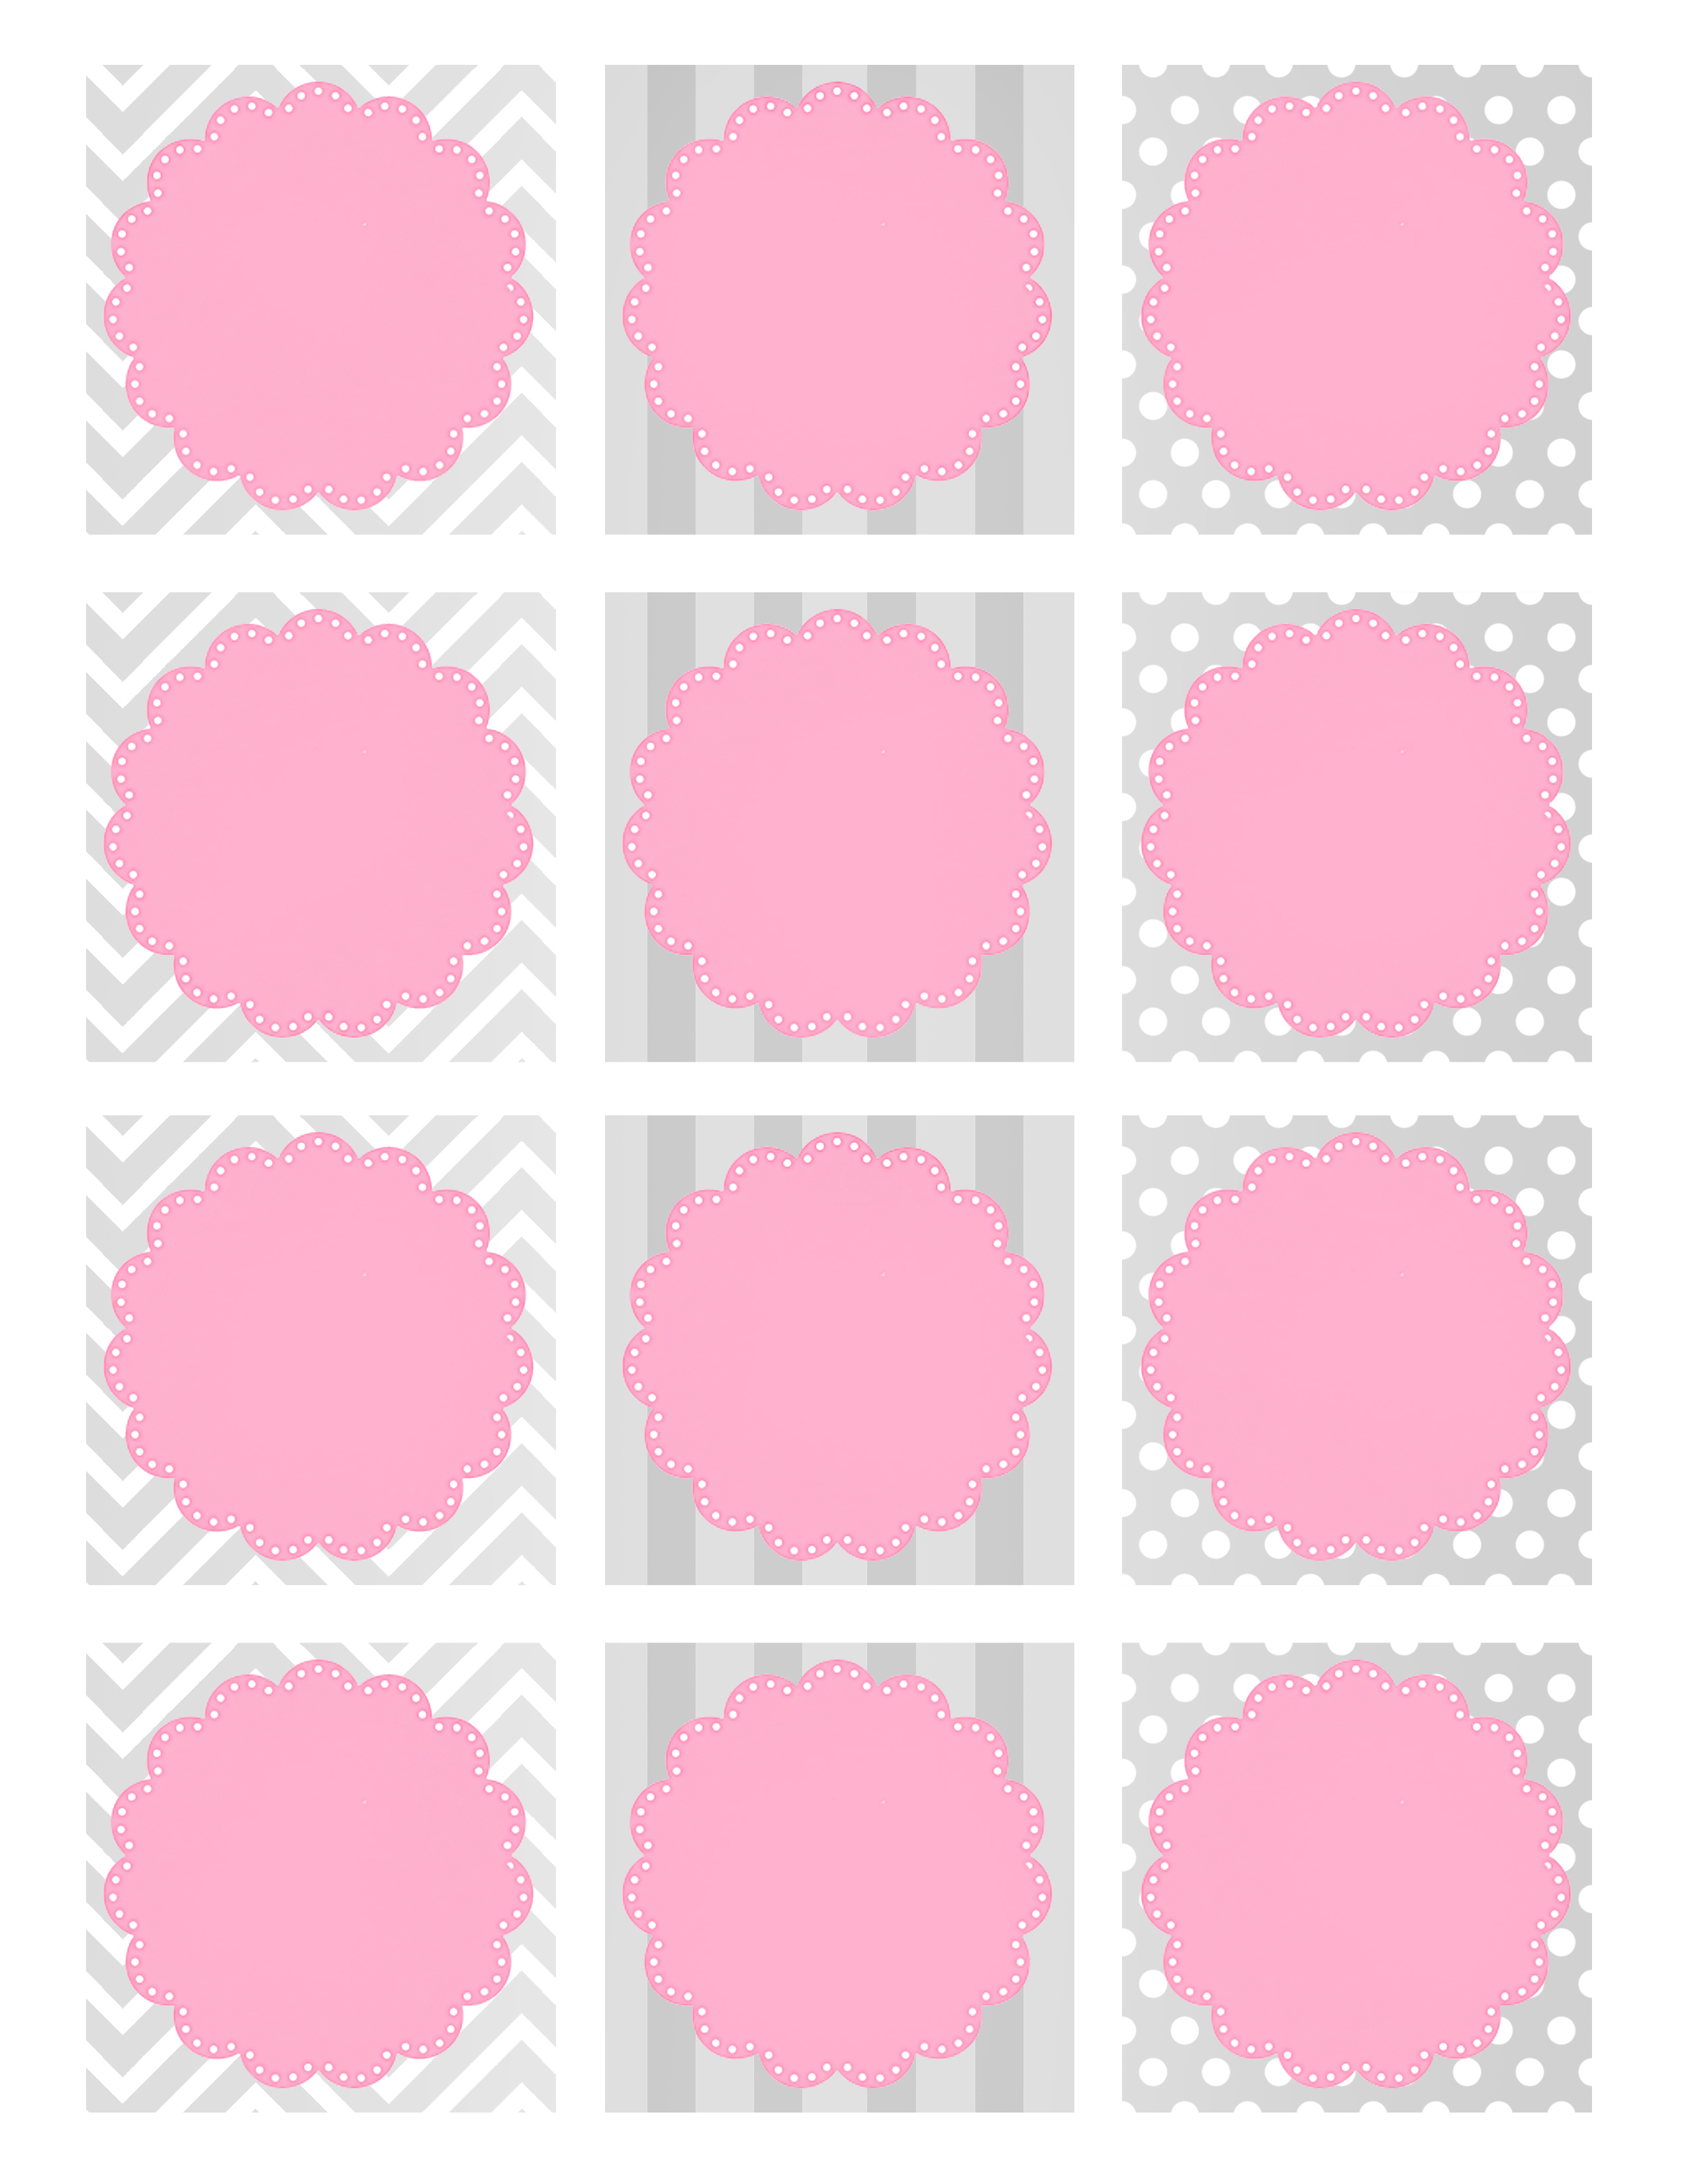 Baby Shower. Baby Shower Gift Tags: Baby Shower Favor Tag Printables - Free Printable Baby Shower Favor Tags Template